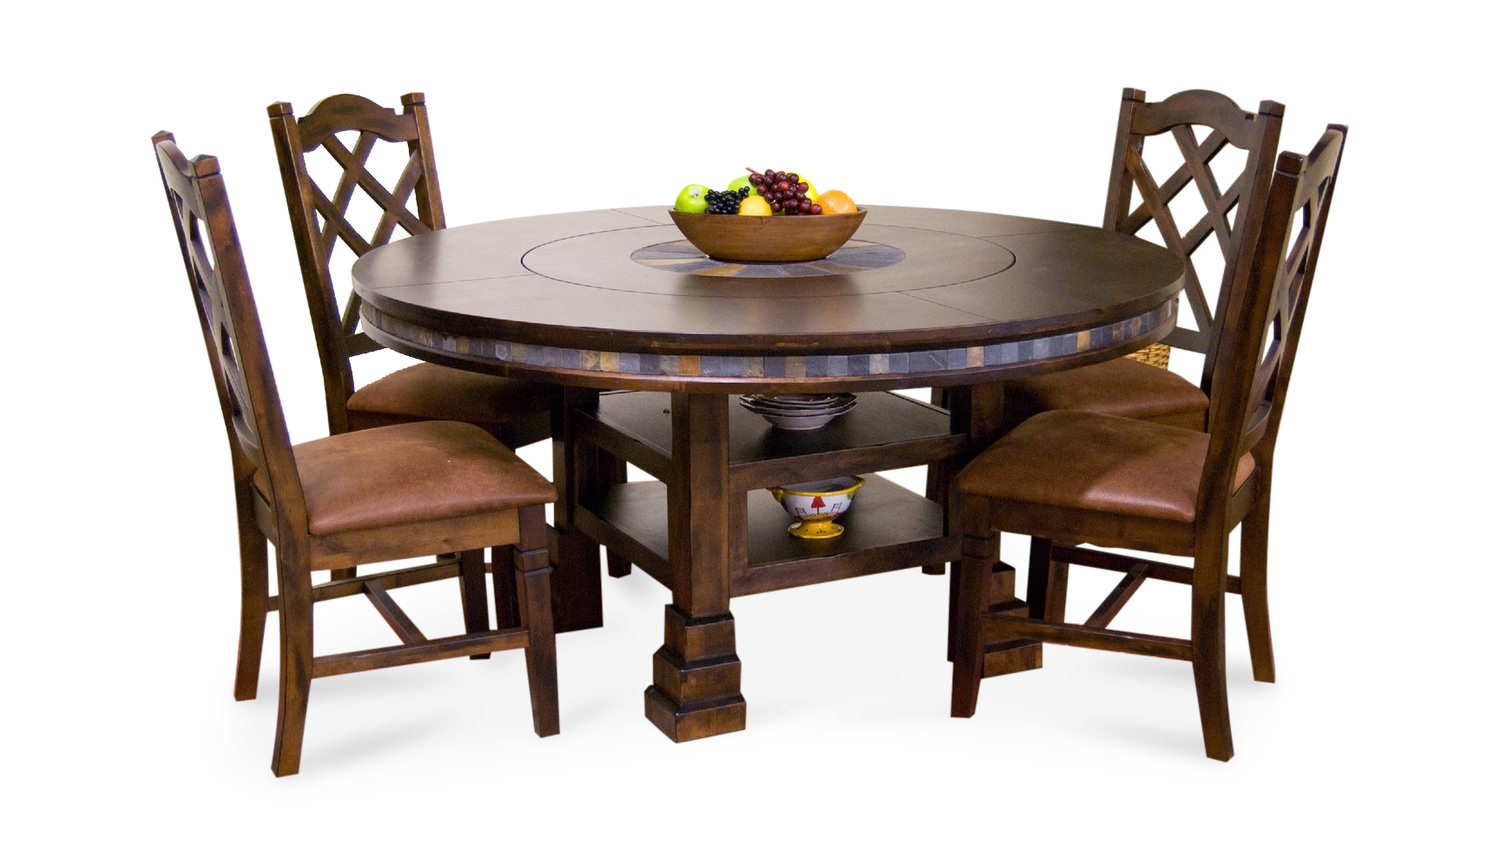 Charmant Santa Fe Round Table With 4 Side Chairs ...